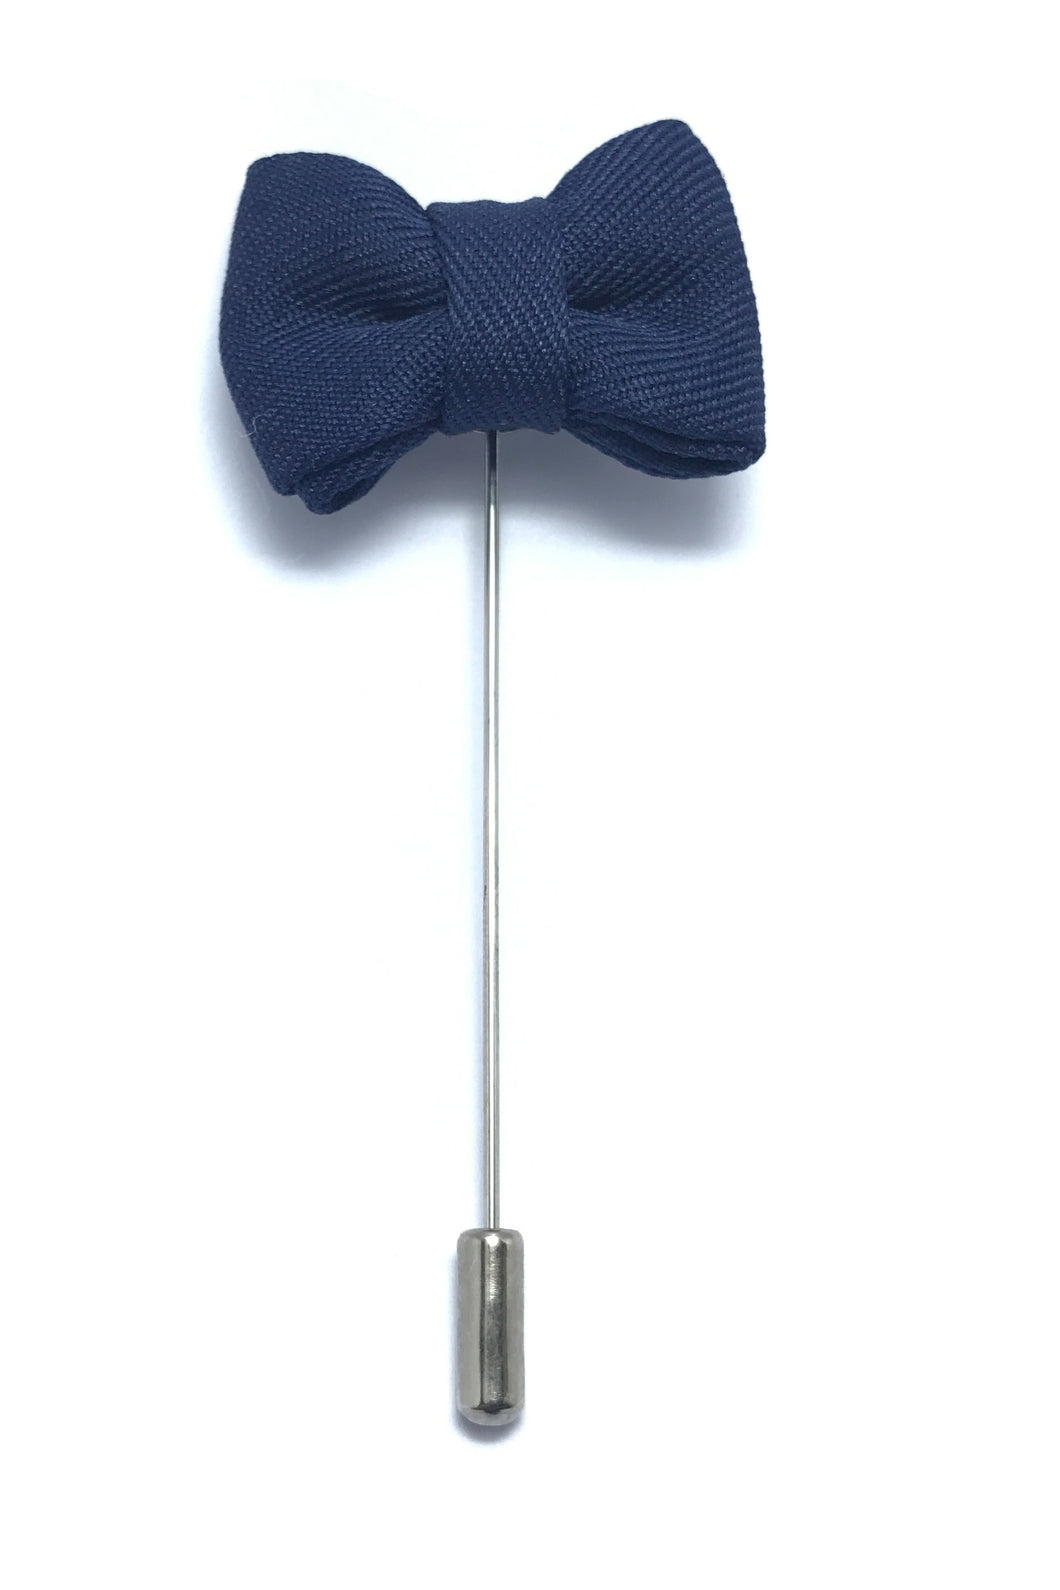 Lapel Pins - Navy blue bow tie